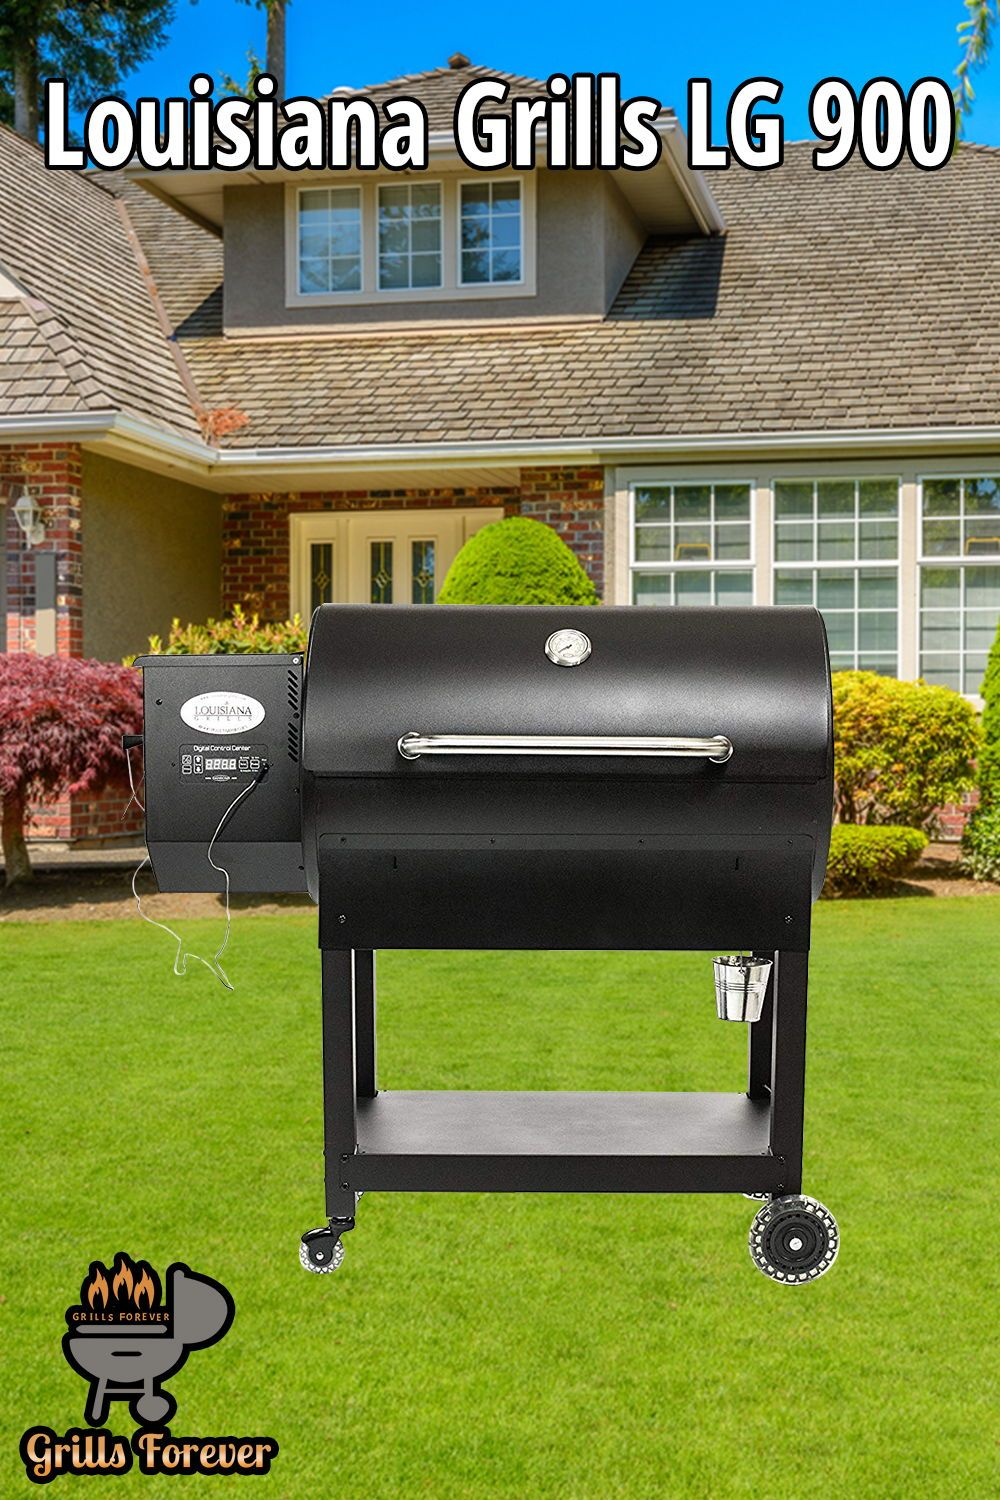 Louisiana Grills LG 900 Review | Top Grilling Brands